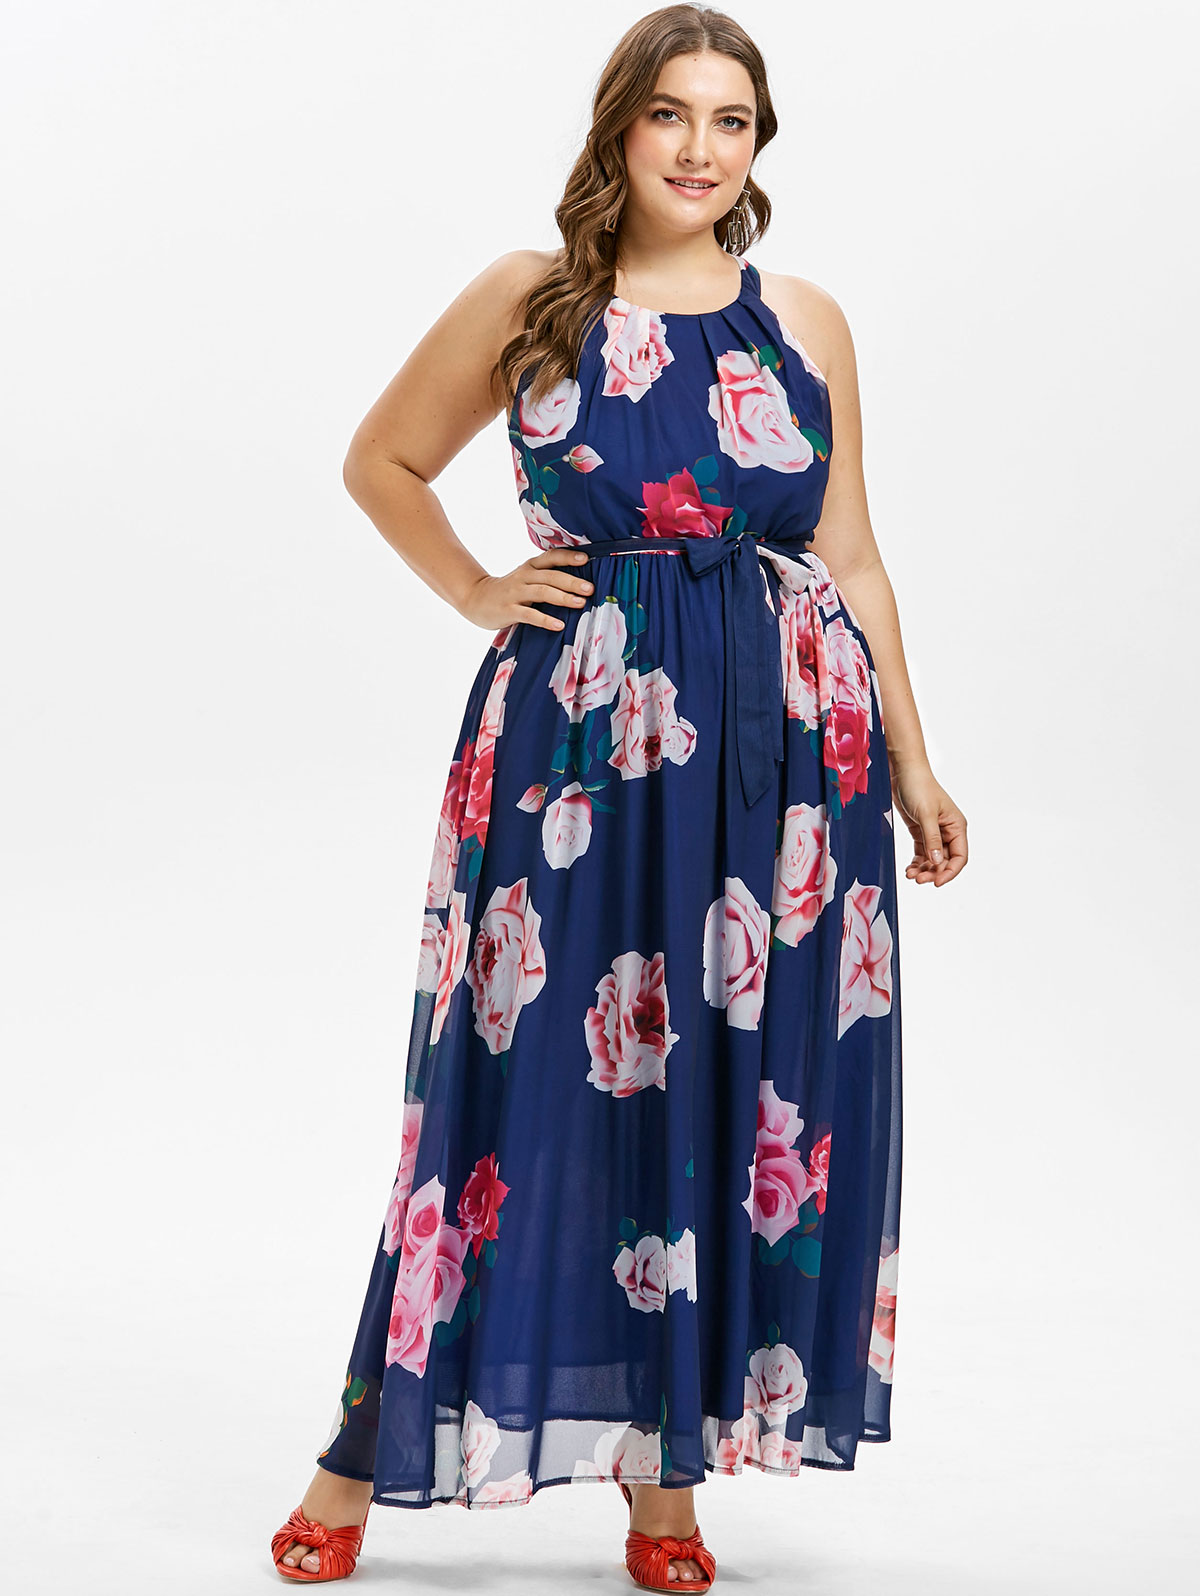 8bff76634d5 Wipalo Casual Plus Size Belted Floral Print Maxi Dress Sleeveless O ...